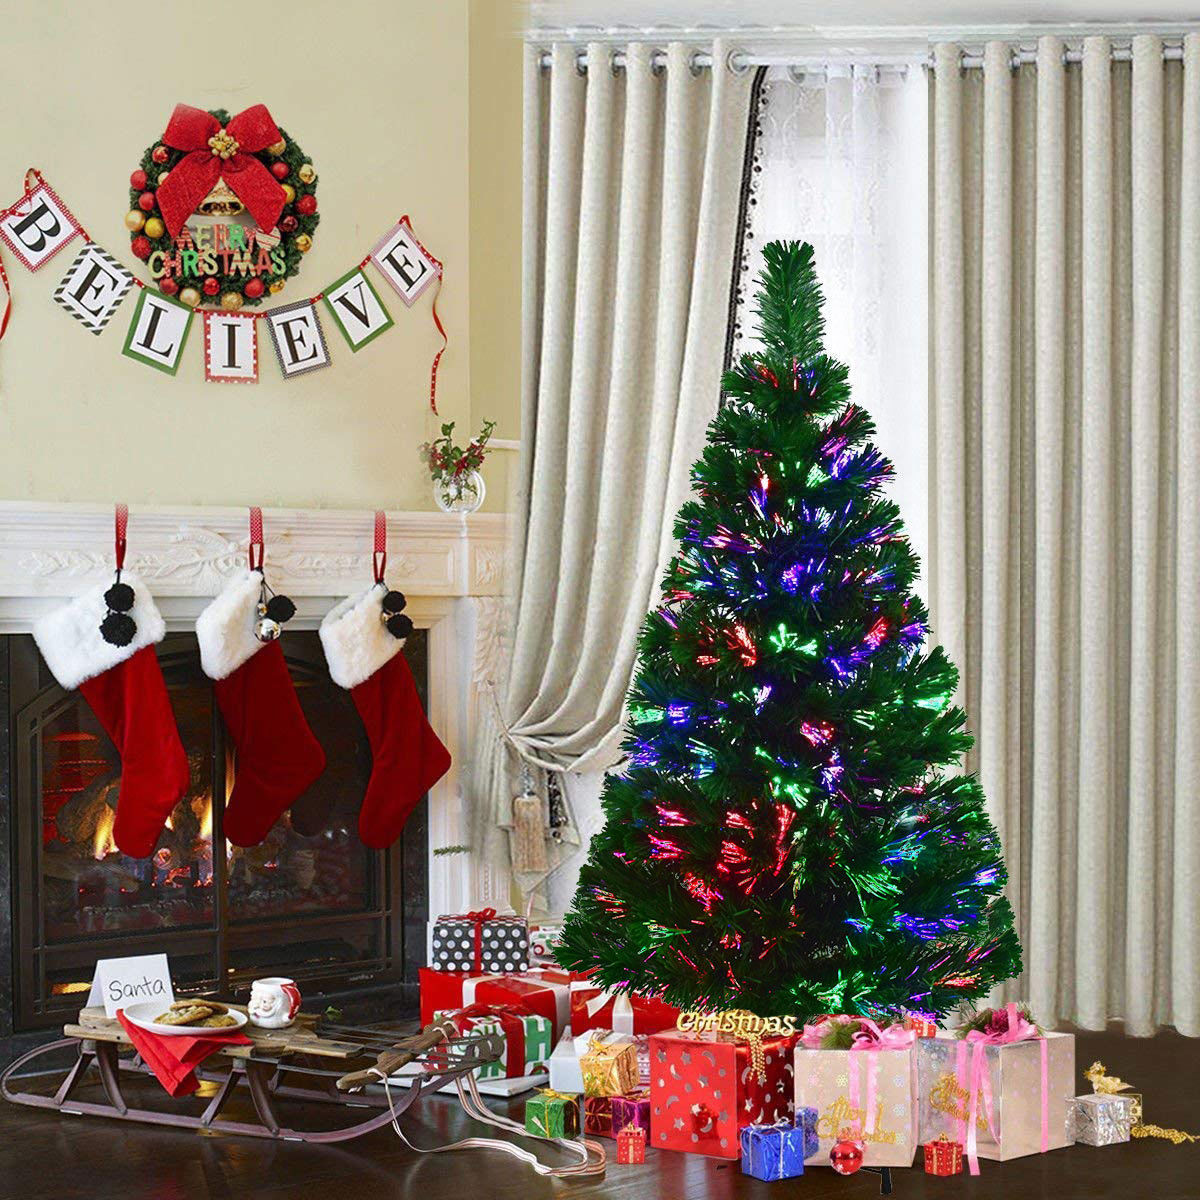 Costway 4Ft Pre-Lit Fiber Optic Artificial PVC Christmas Tree w/ Metal Stand Holiday